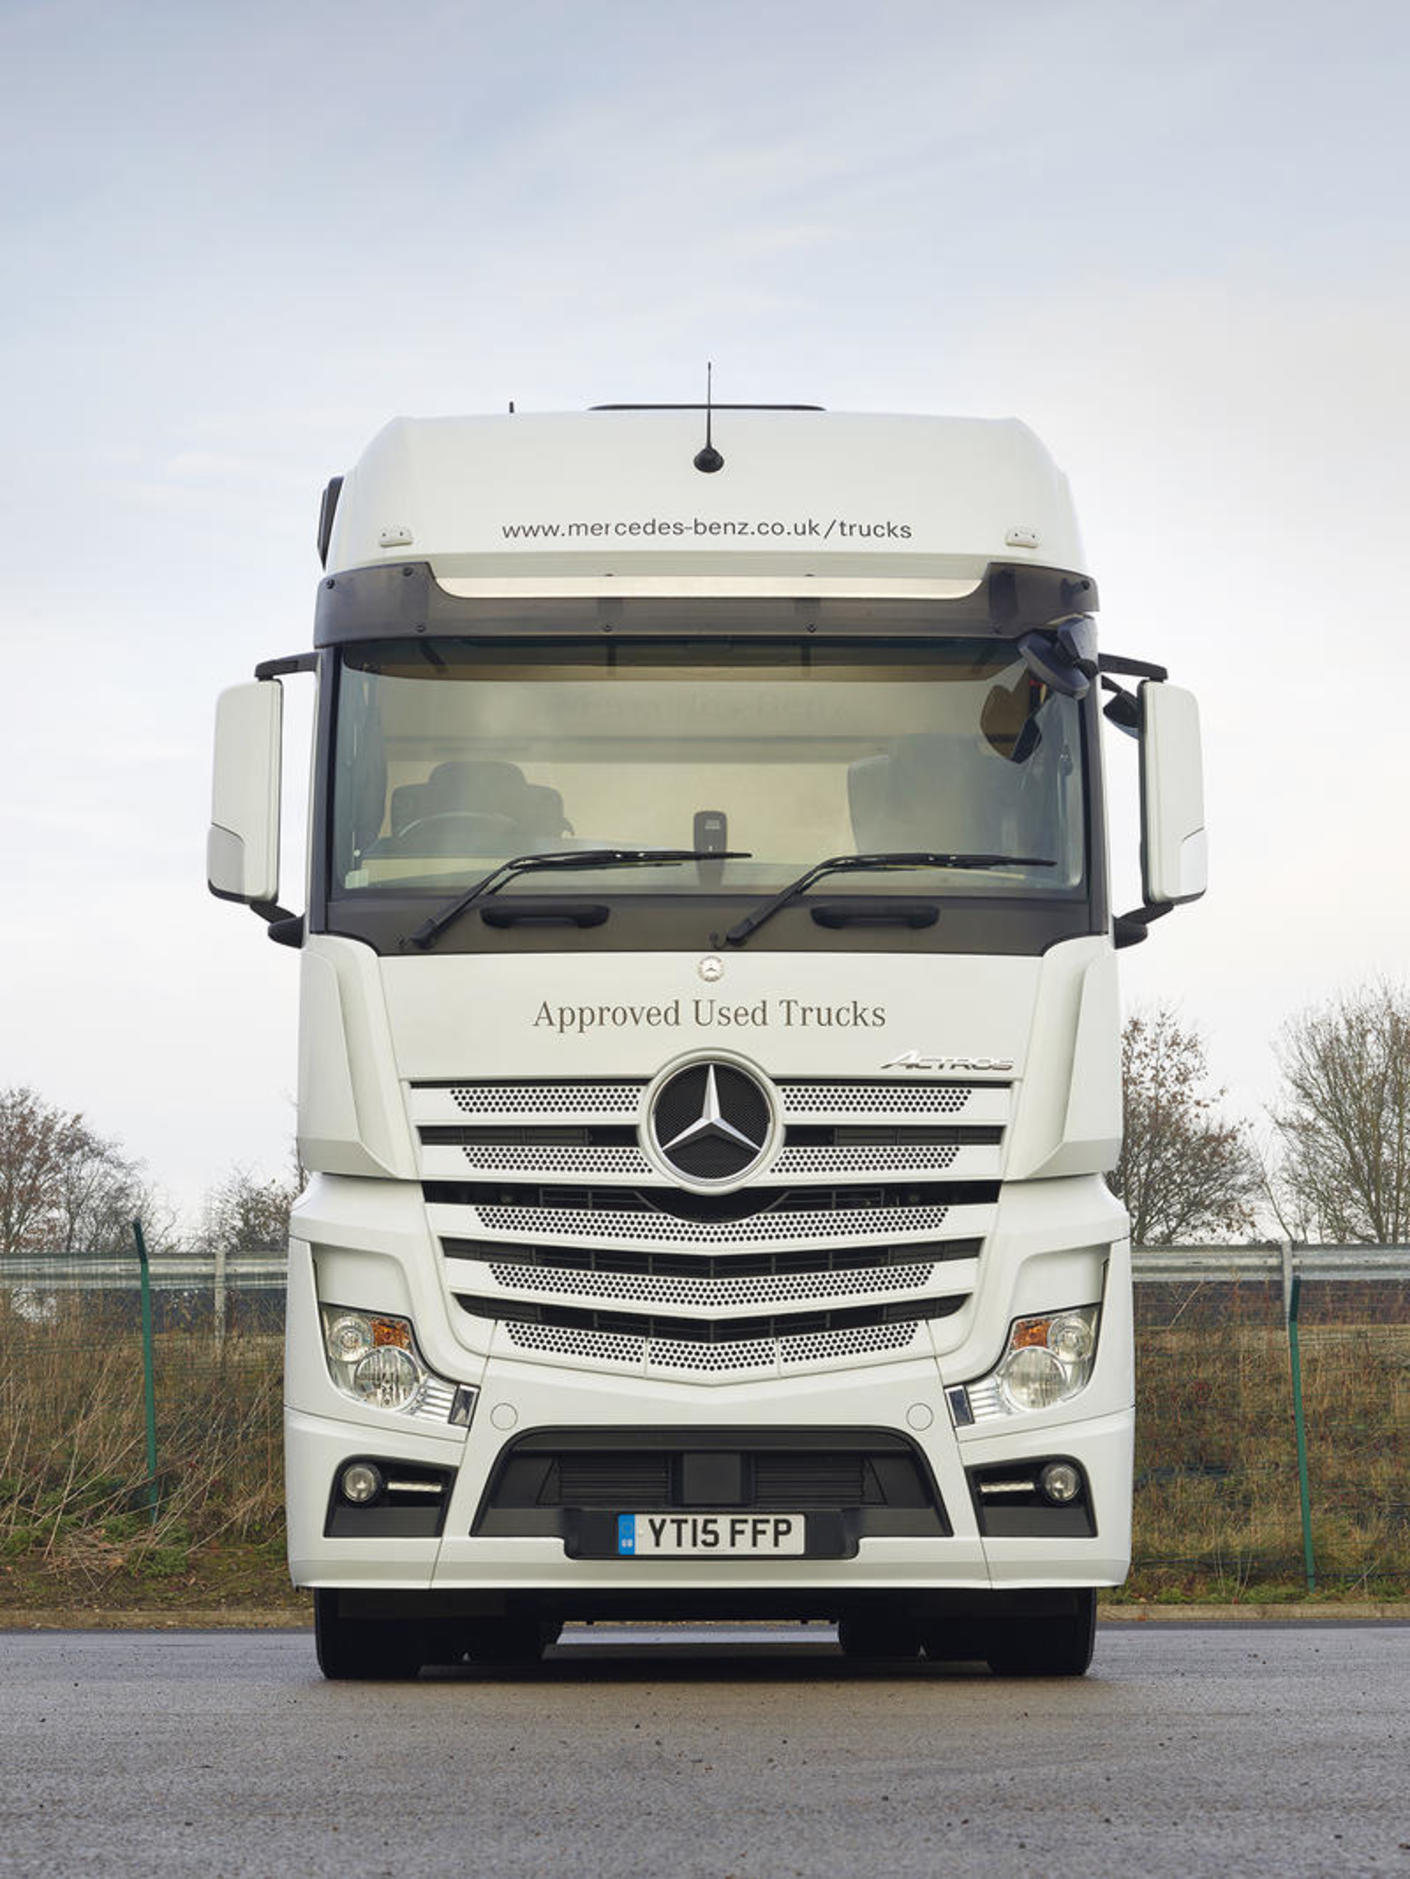 Used mercedes benz trucks for sale in uk your site for Mercedes benz used trucks for sale